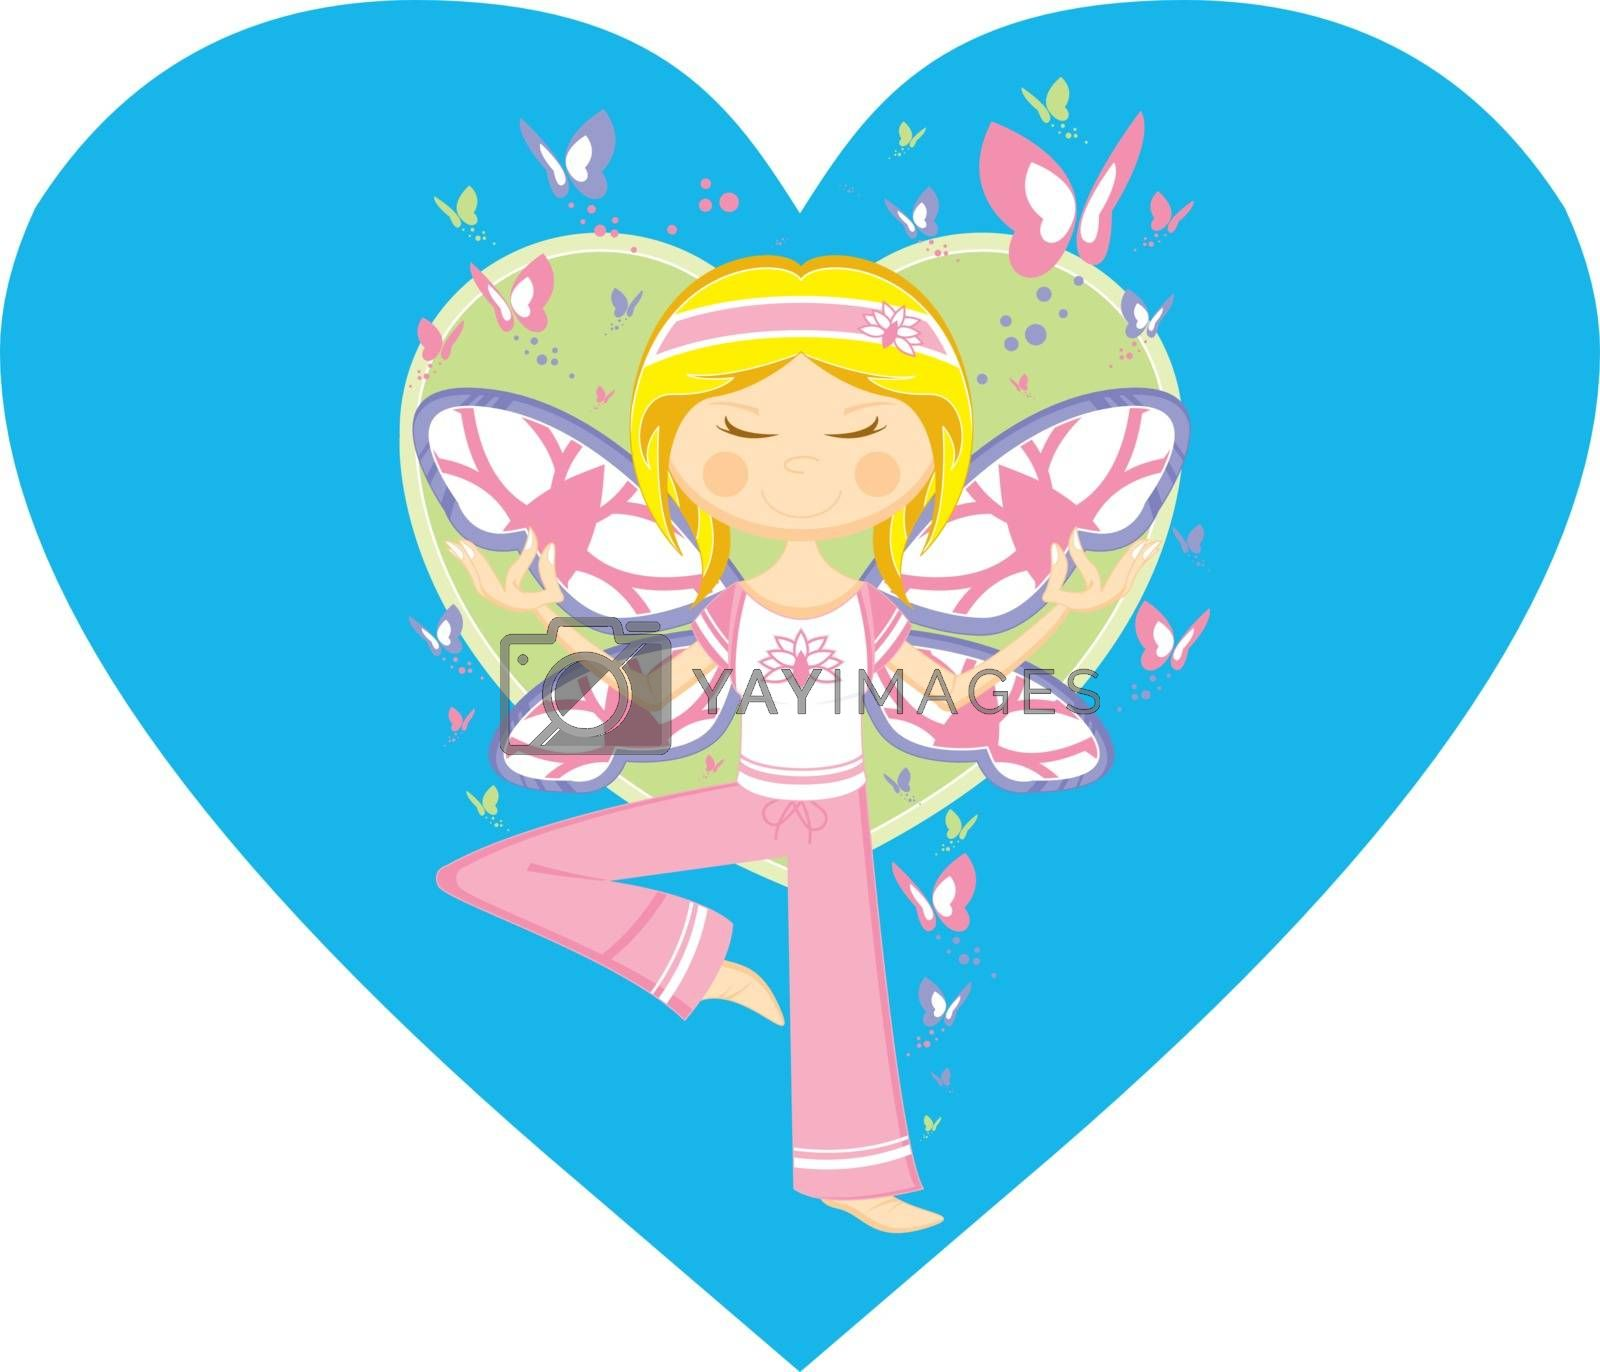 Cute Cartoon Yoga Girl on a Valentine Heart Vector Illustration by Mark Murphy Creative